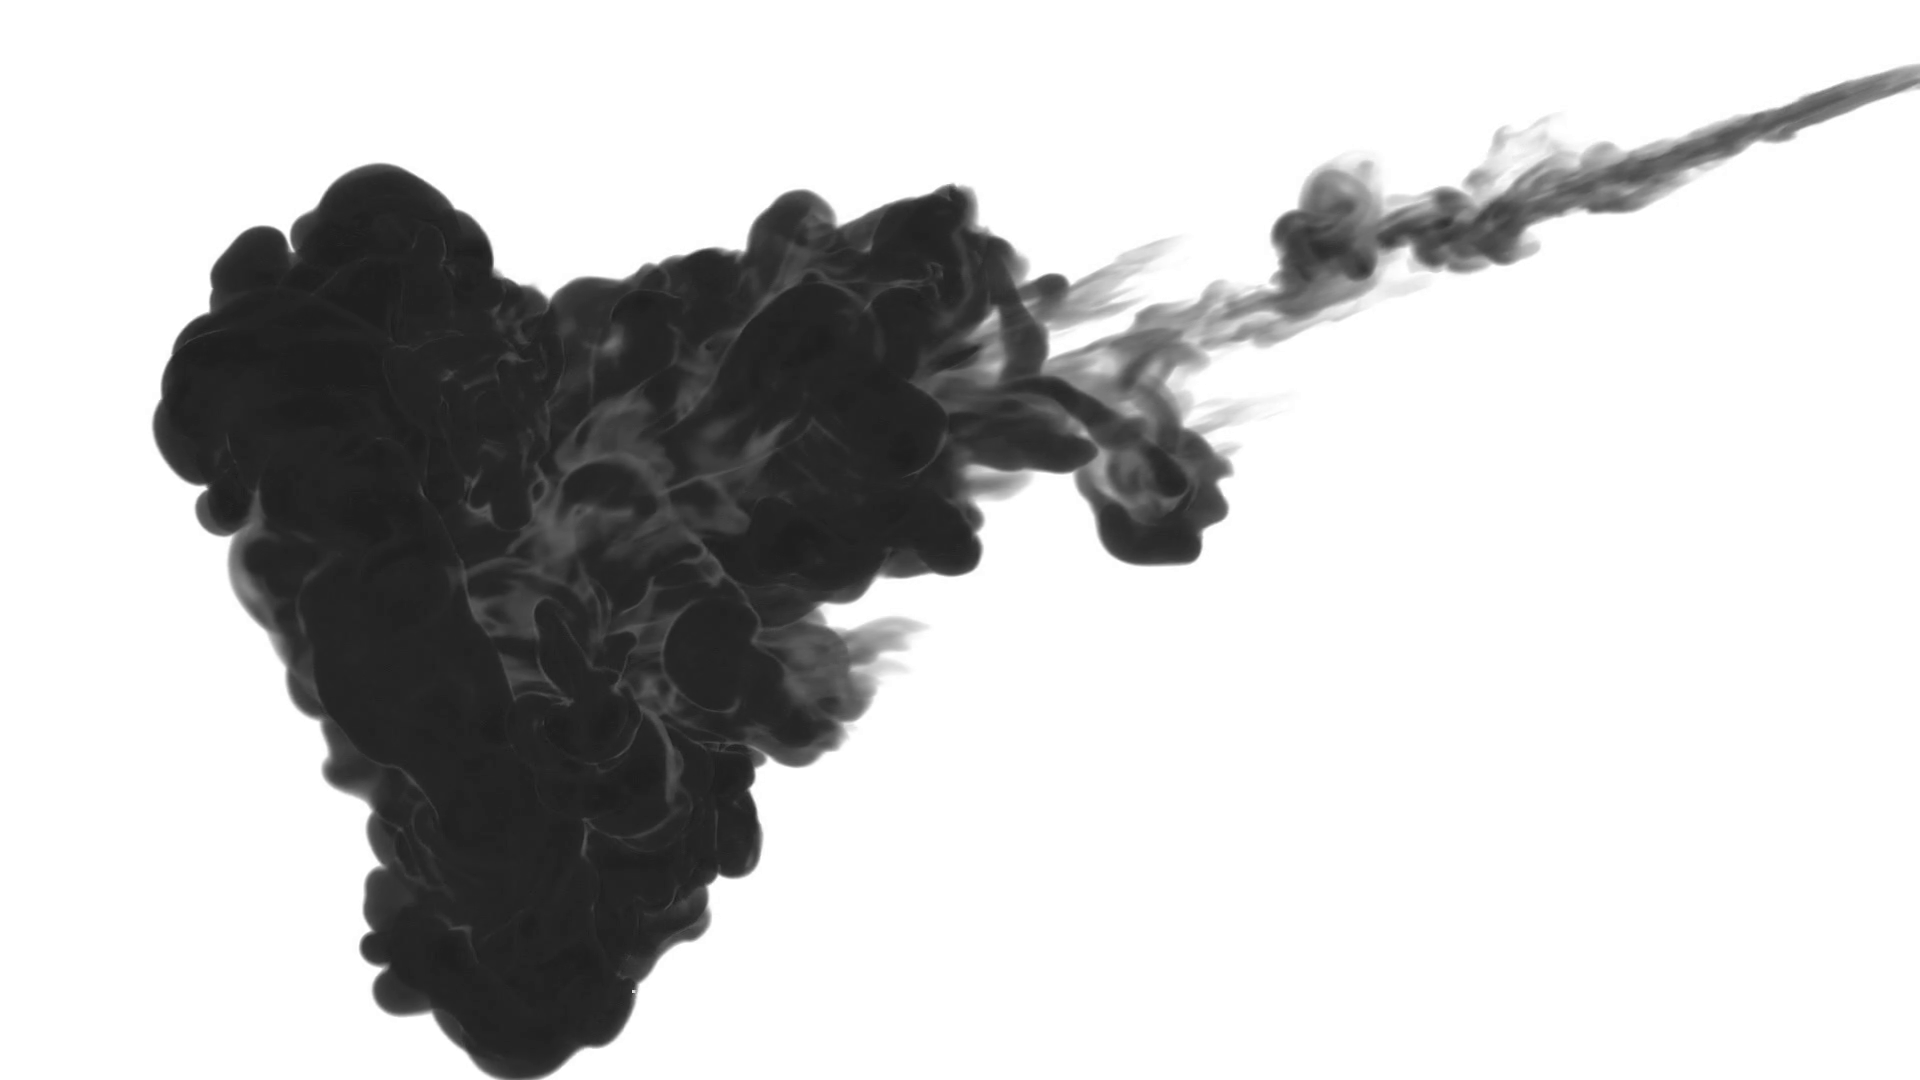 1920x1080 Ink Background For Compositing. Black Smoke Or Ink In Water Series